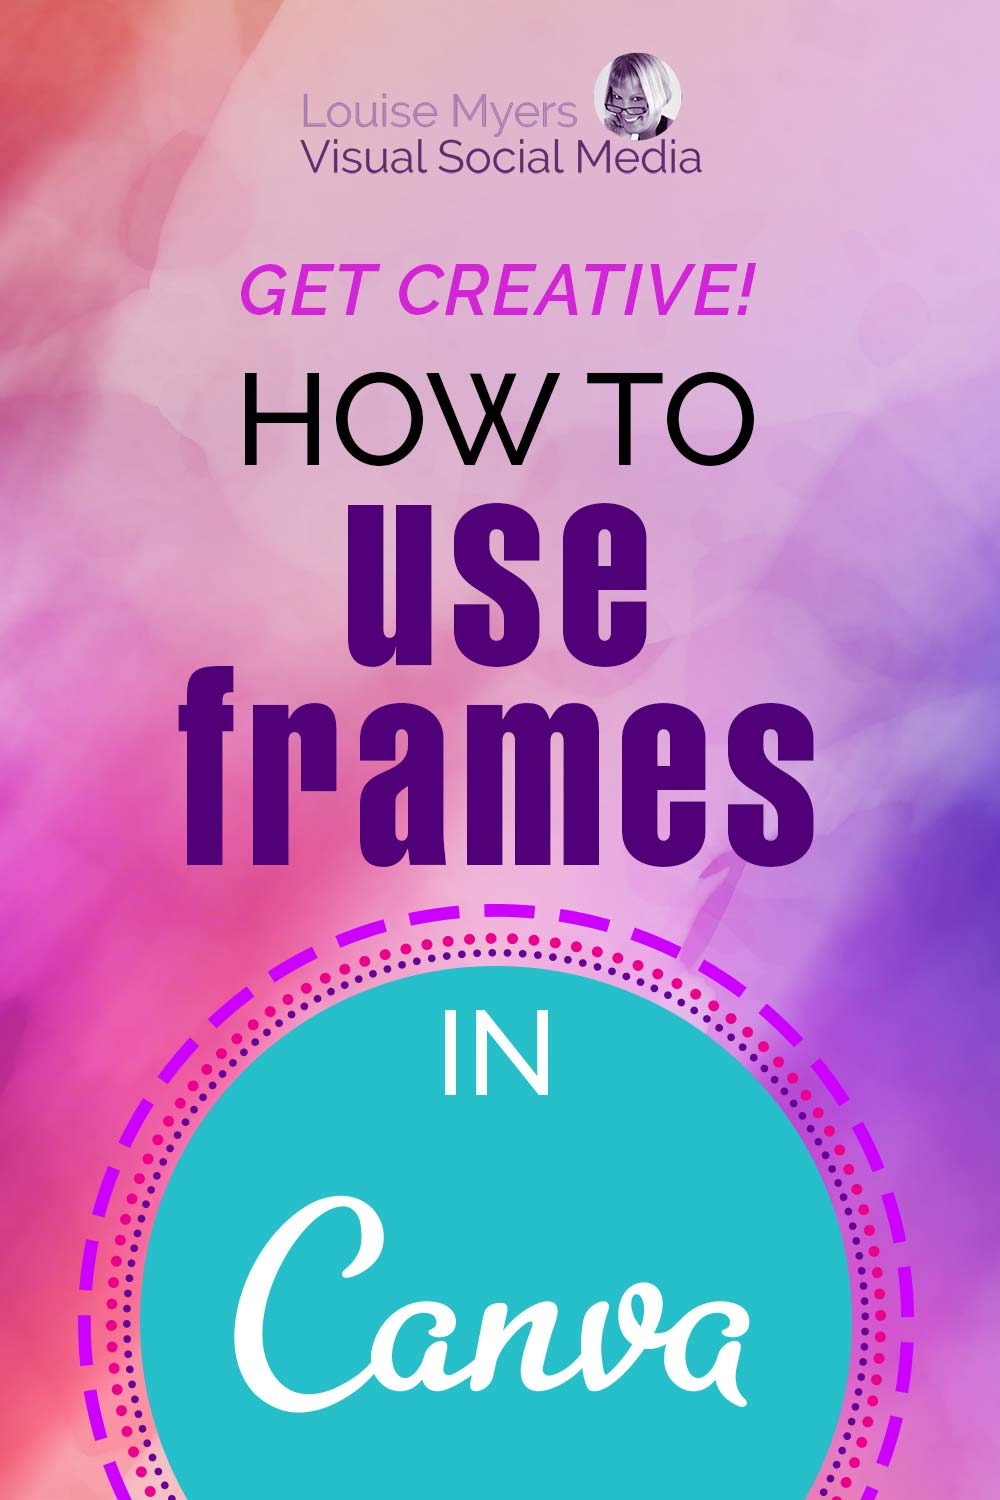 text says get creative how to use frames in canva on purple watercolor background.